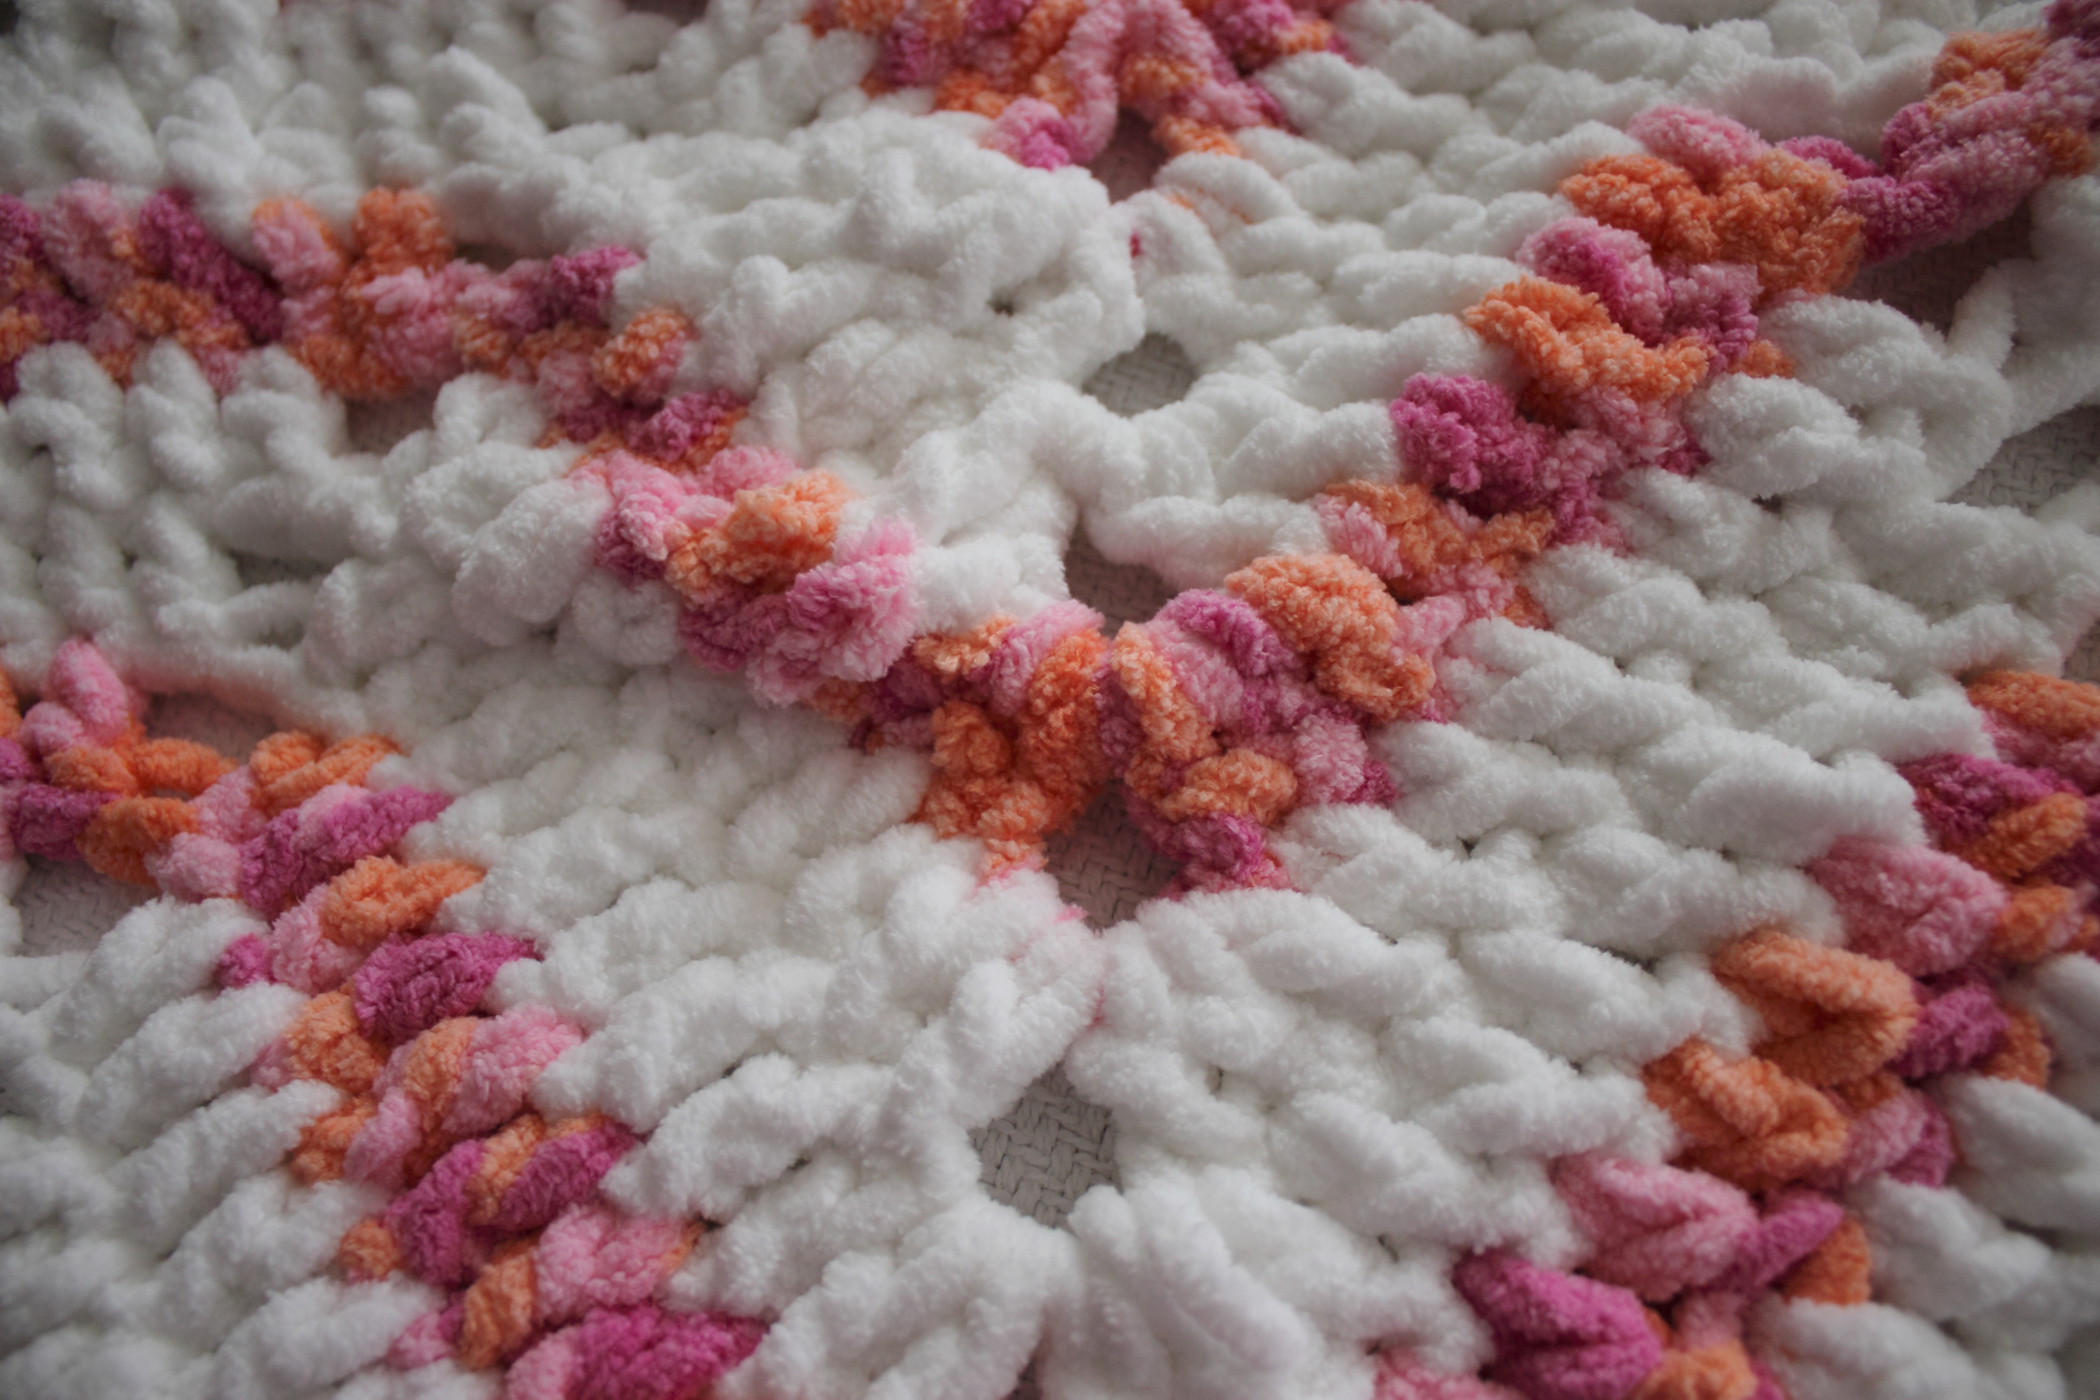 Bernat Blanket Yarn Patterns Fresh Free Crochet Patterns Bernat Yarn Dancox for Of New 42 Photos Bernat Blanket Yarn Patterns